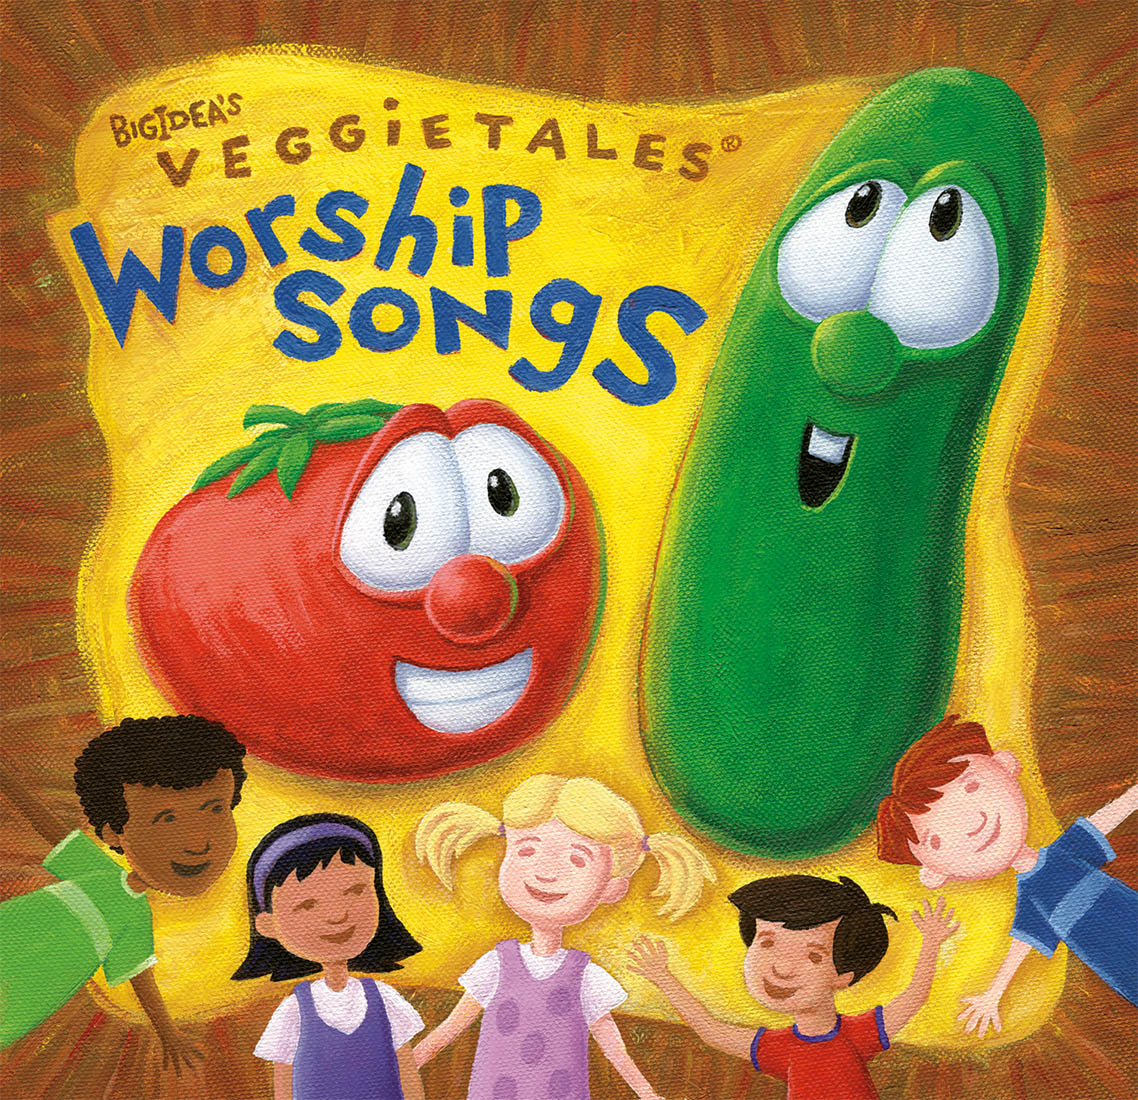 Illustration-CD-Packaging-VeggieTales-Acrylic